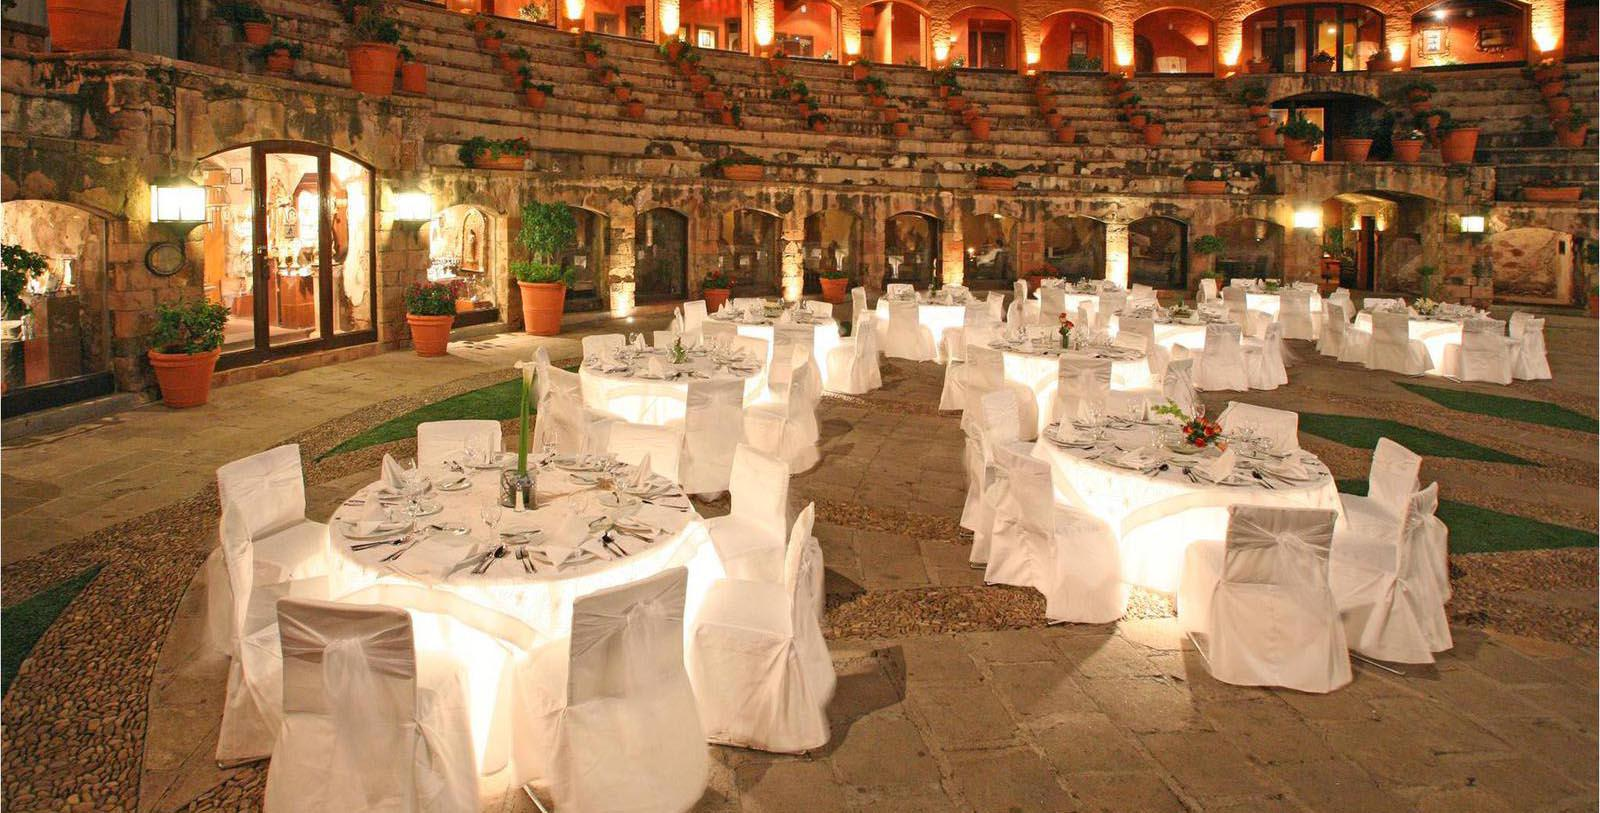 Image of Outdoor Event Space Quinta Real Zacatecas, 1866, Member of Historic Hotels Worldwide, in Zacatecas, Mexico, Experience